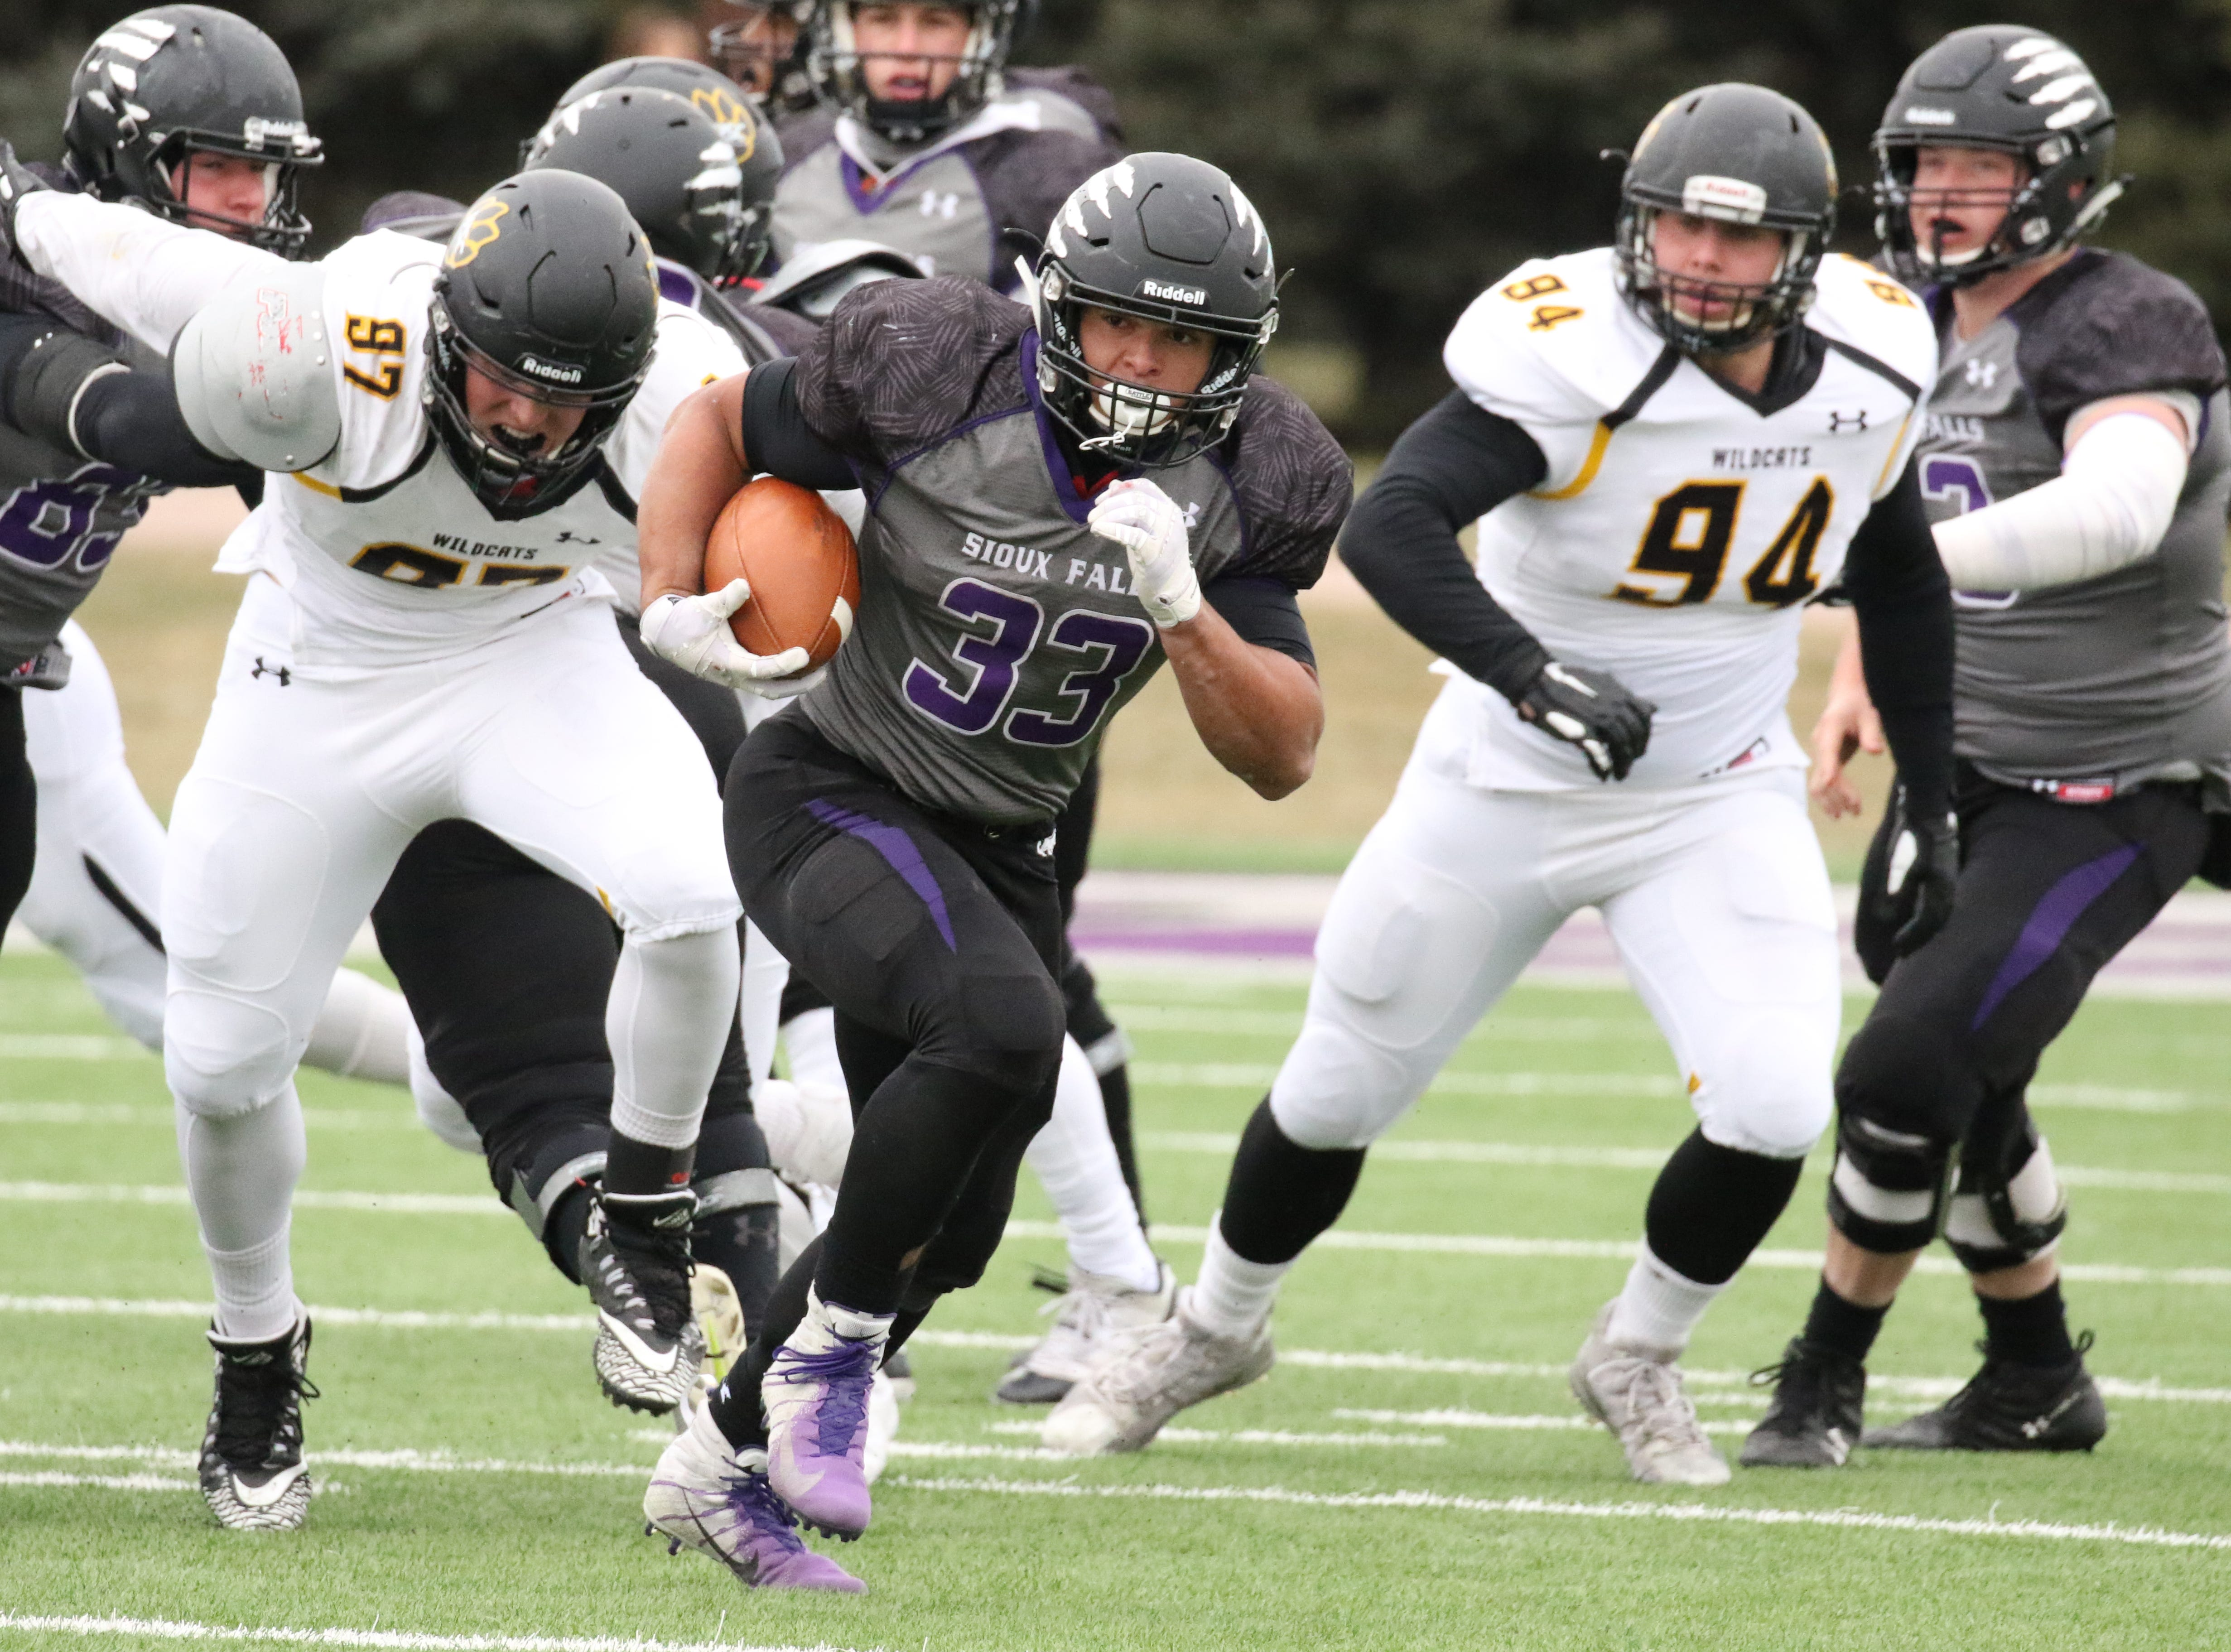 Gabe Watson of USF Cougars named NSIC offensive player of the year